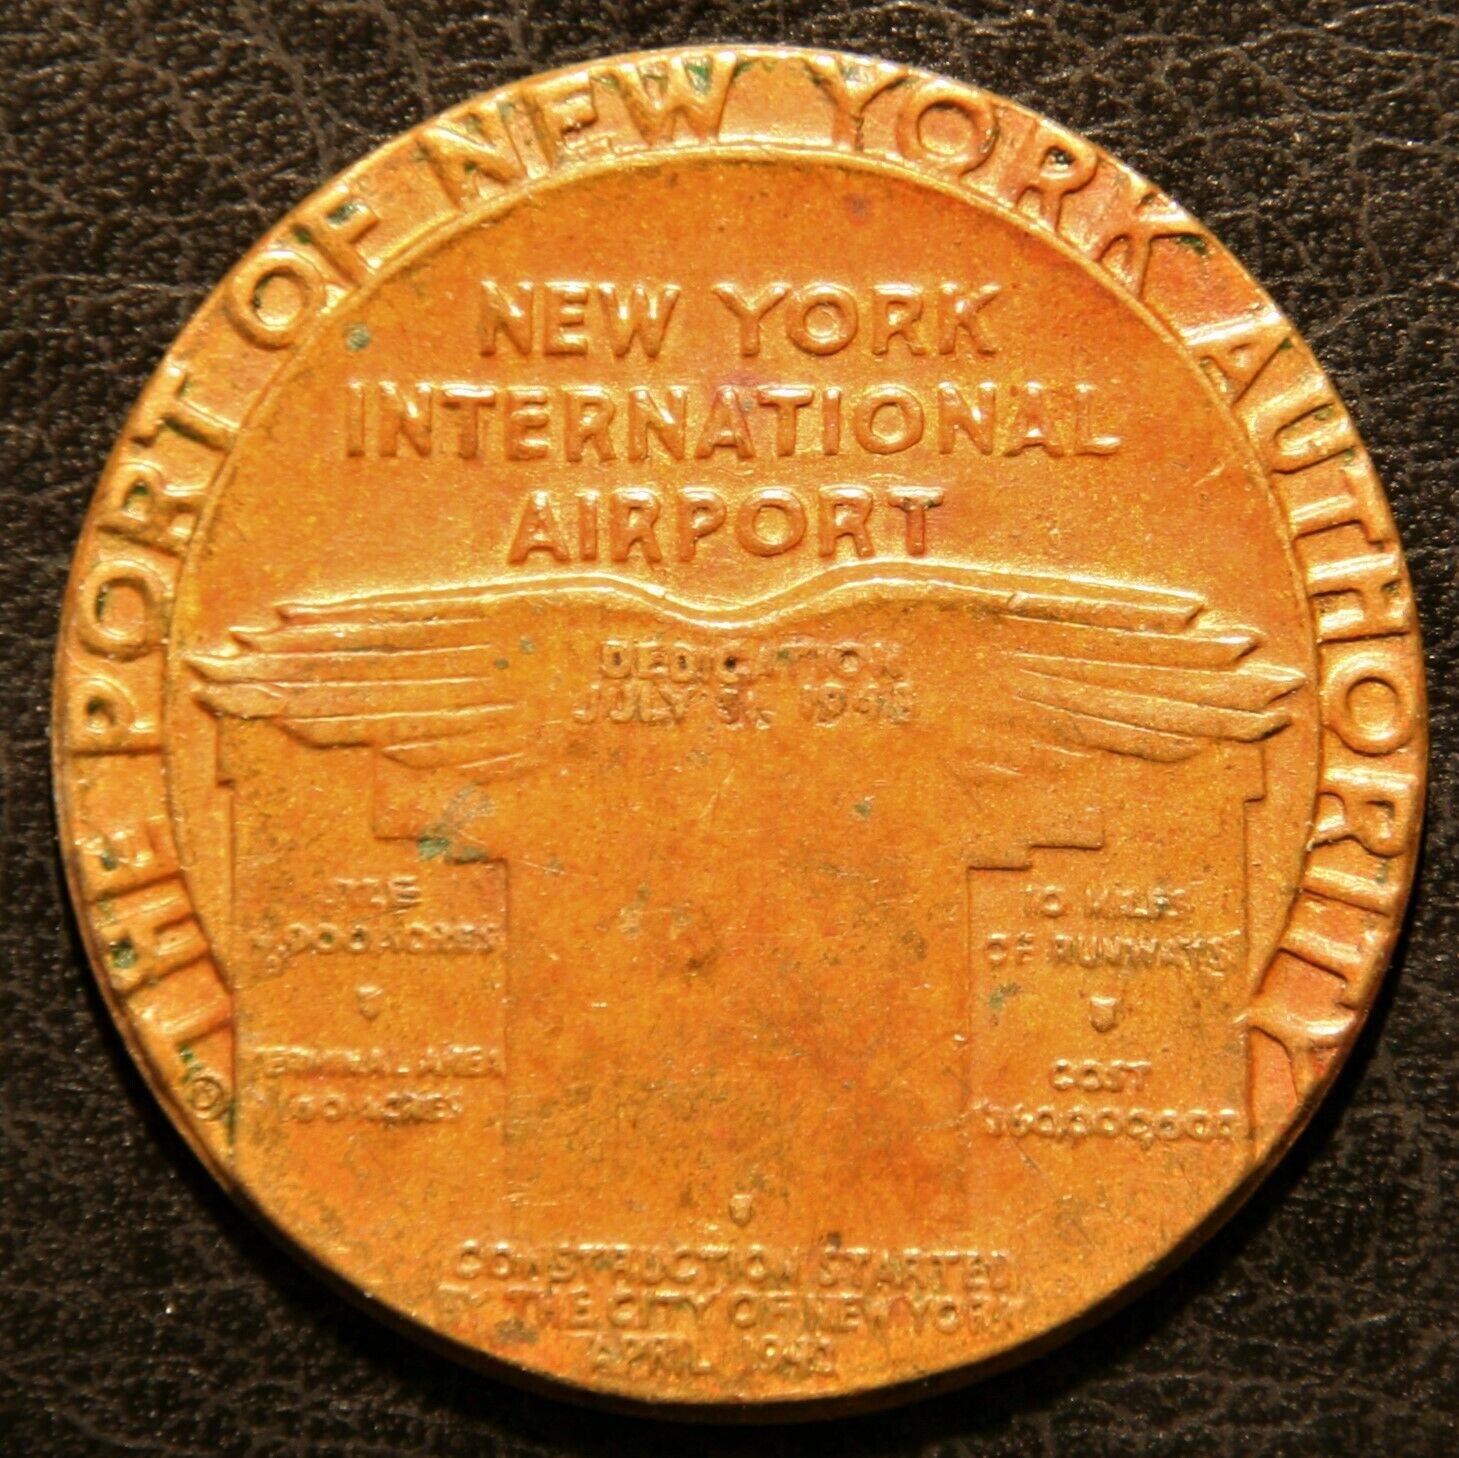 1948 International Airport Dedication Medal Kilenyi - So-Called Dollar HK-499 - $27.95